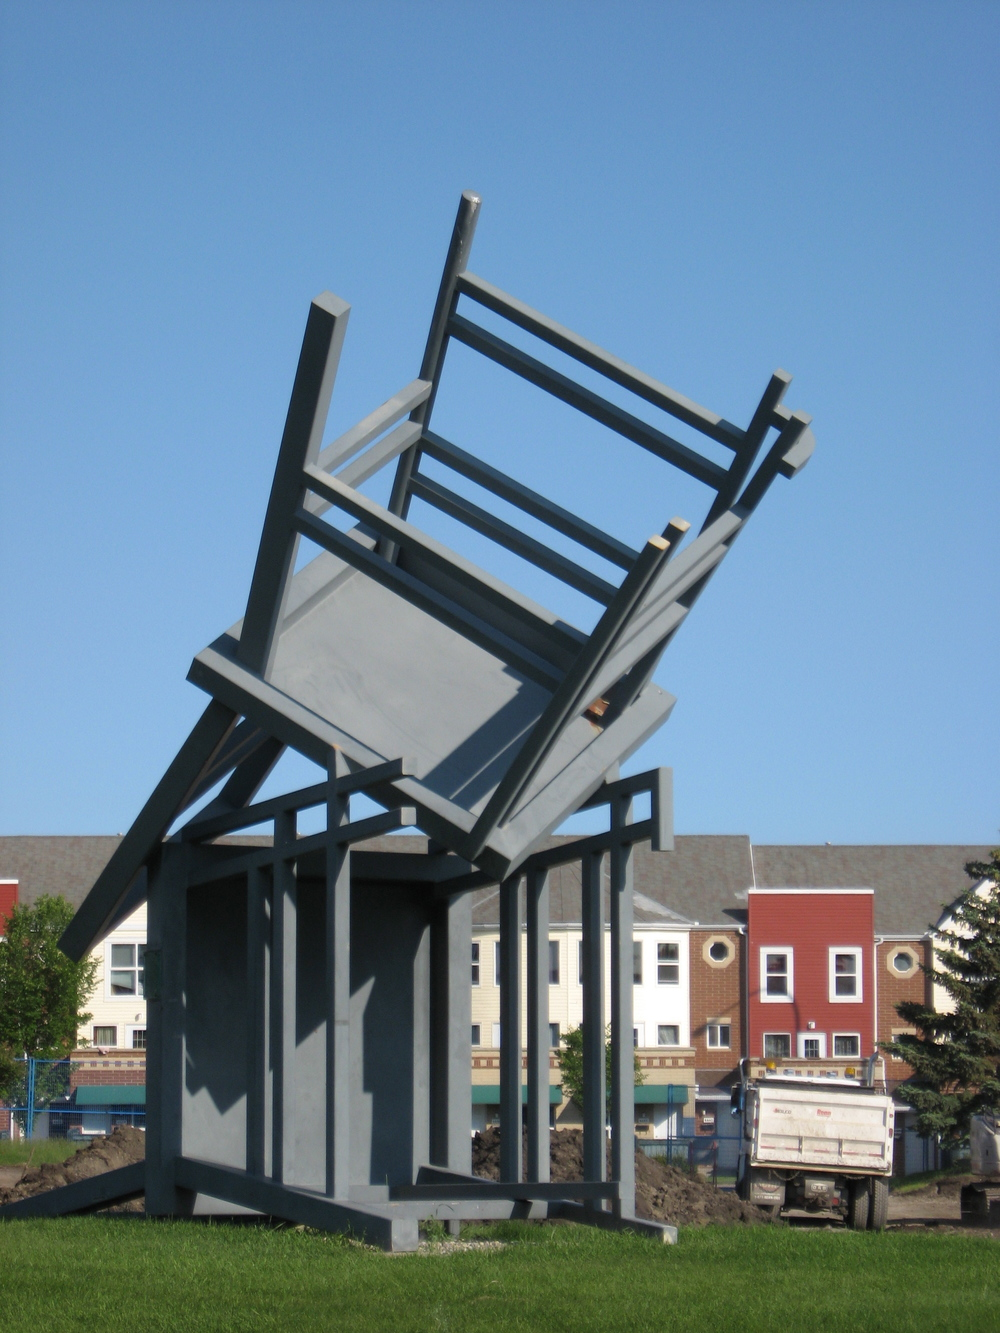 Homage, by Derek Besant (1989 is a 20 foot by 18 foot by 10 foot sculpture located on the campus of Mount Royal University, in Calgary.